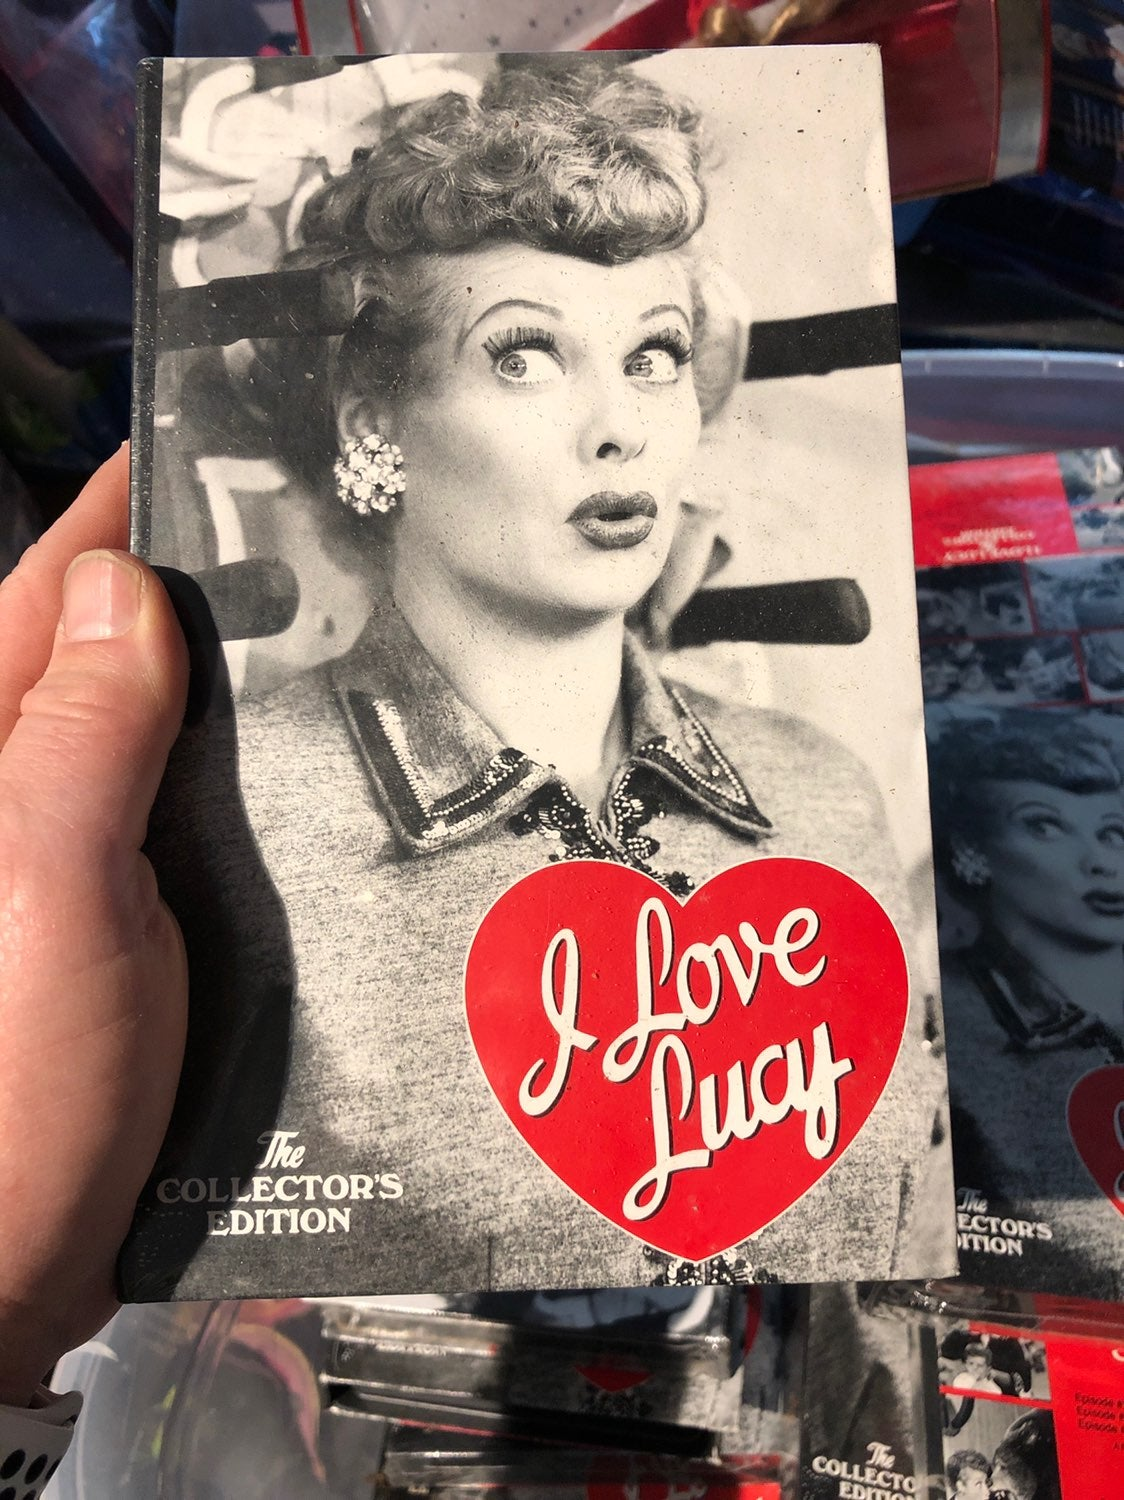 I Love Lucy Three episode vhs tape rando